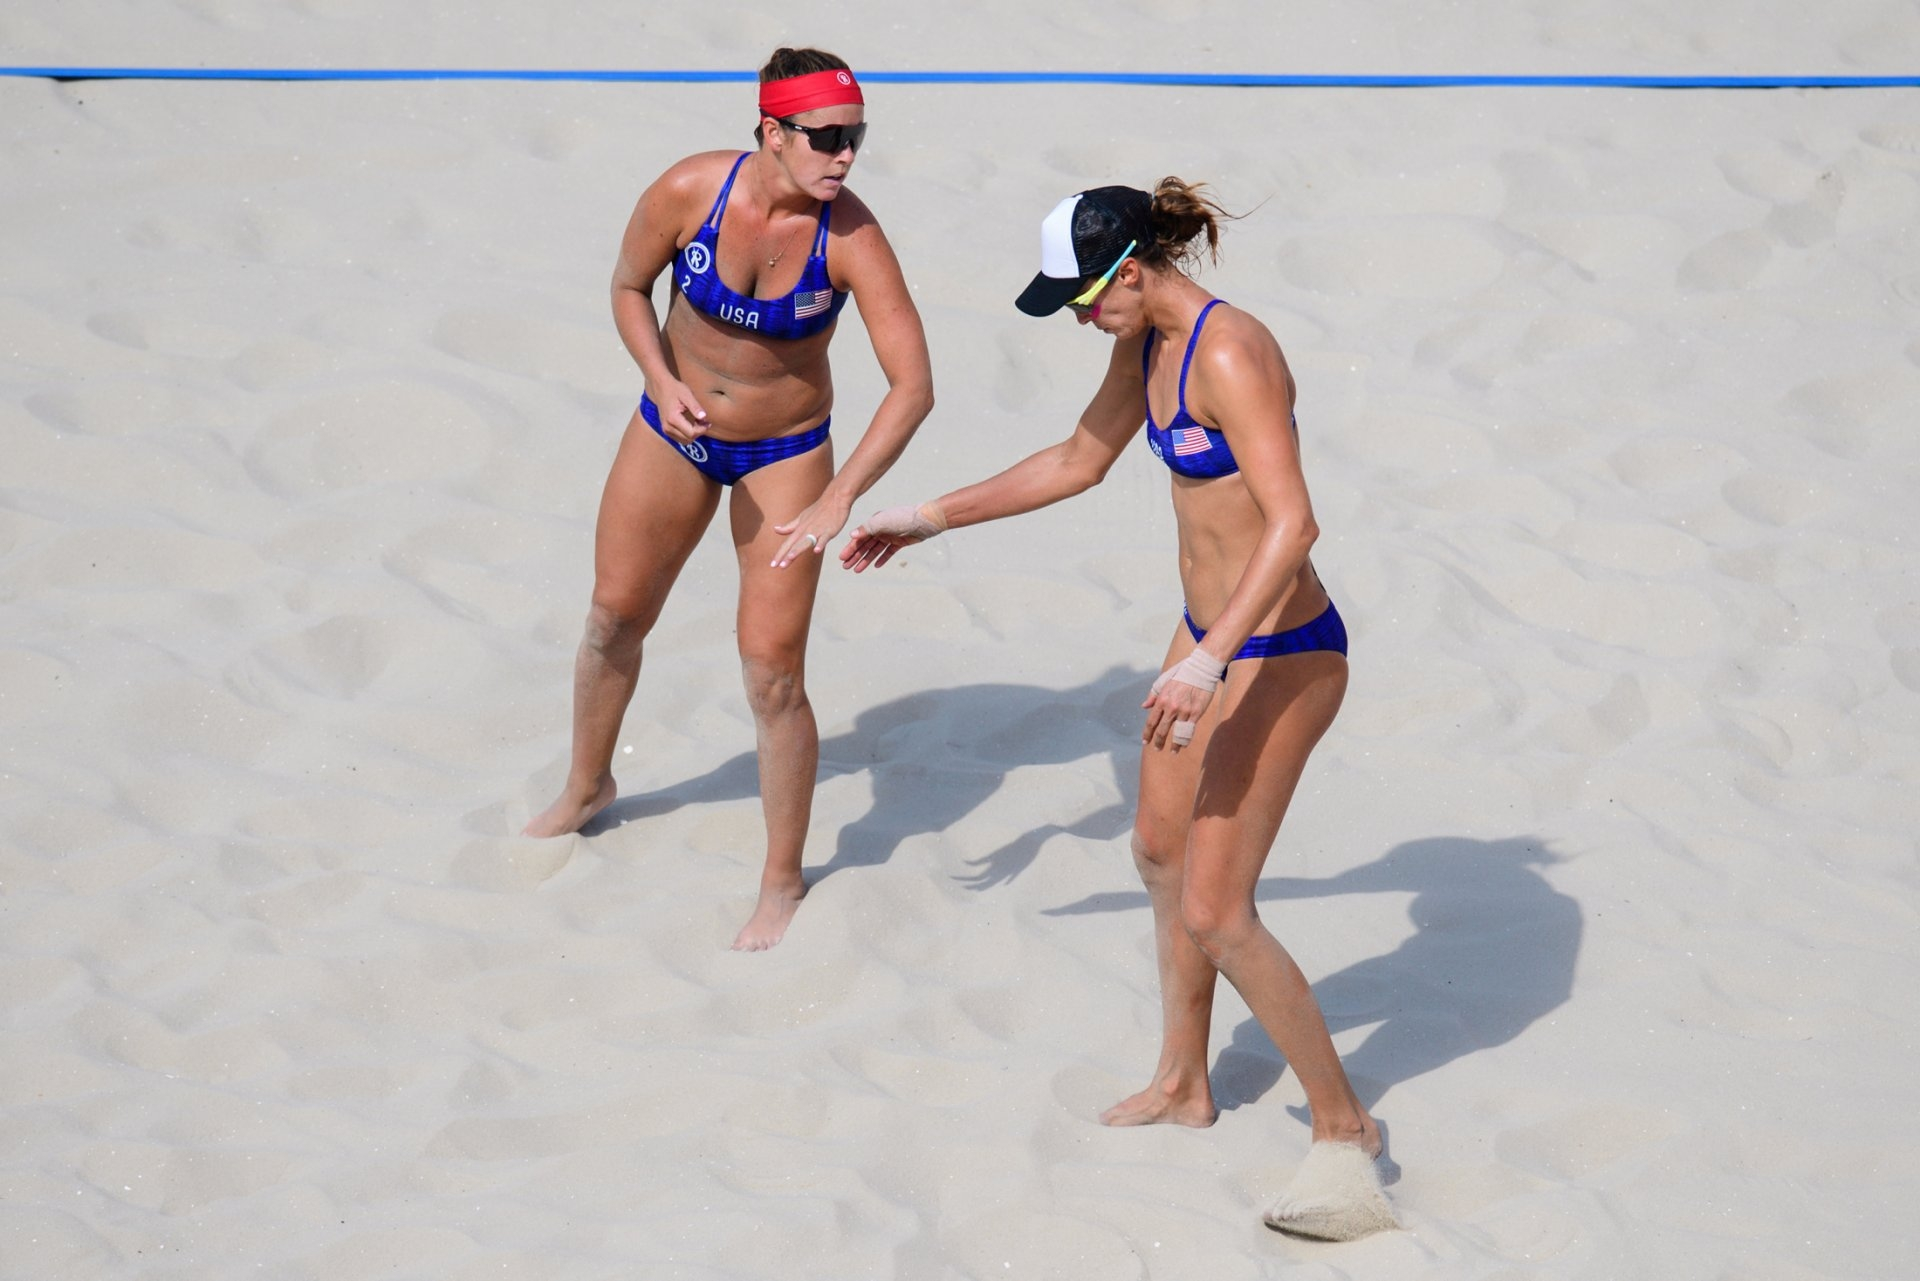 Sweat and Fendrick were partners in the Rio 2016 Olympics (Photocredit: FIVB)